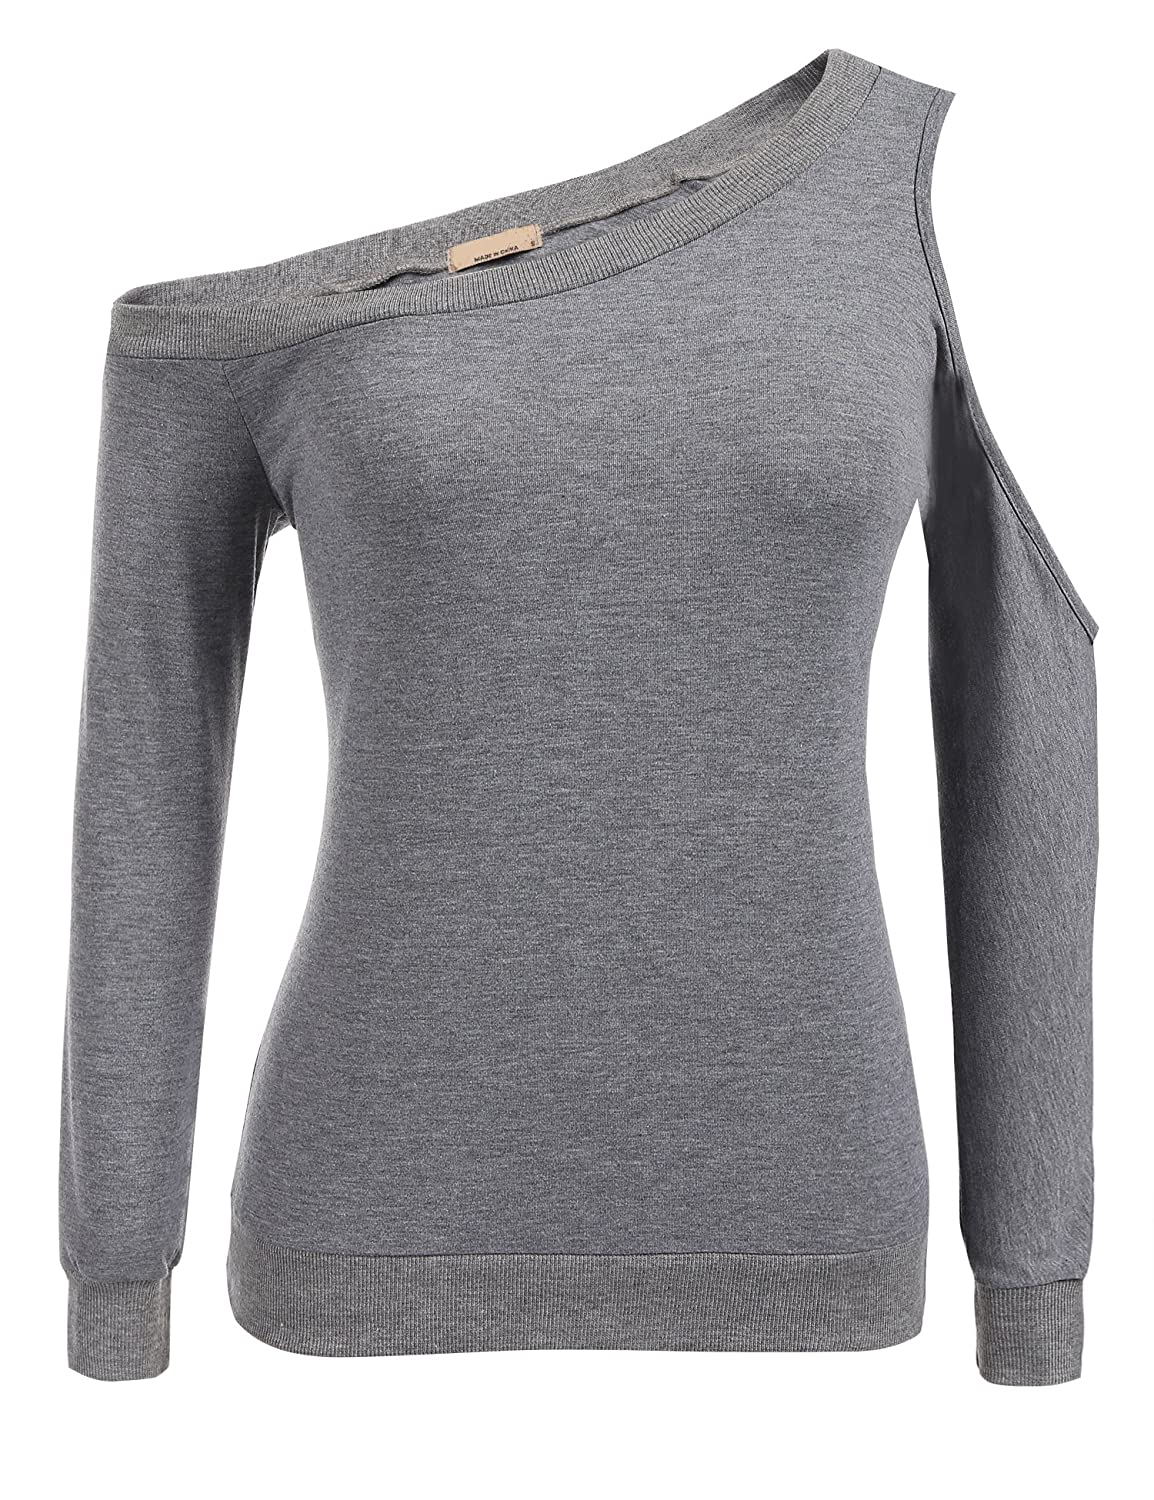 7012ad5ef88fa0 Top 10 wholesale Gray Crew Neck Sweater Womens - Chinabrands.com